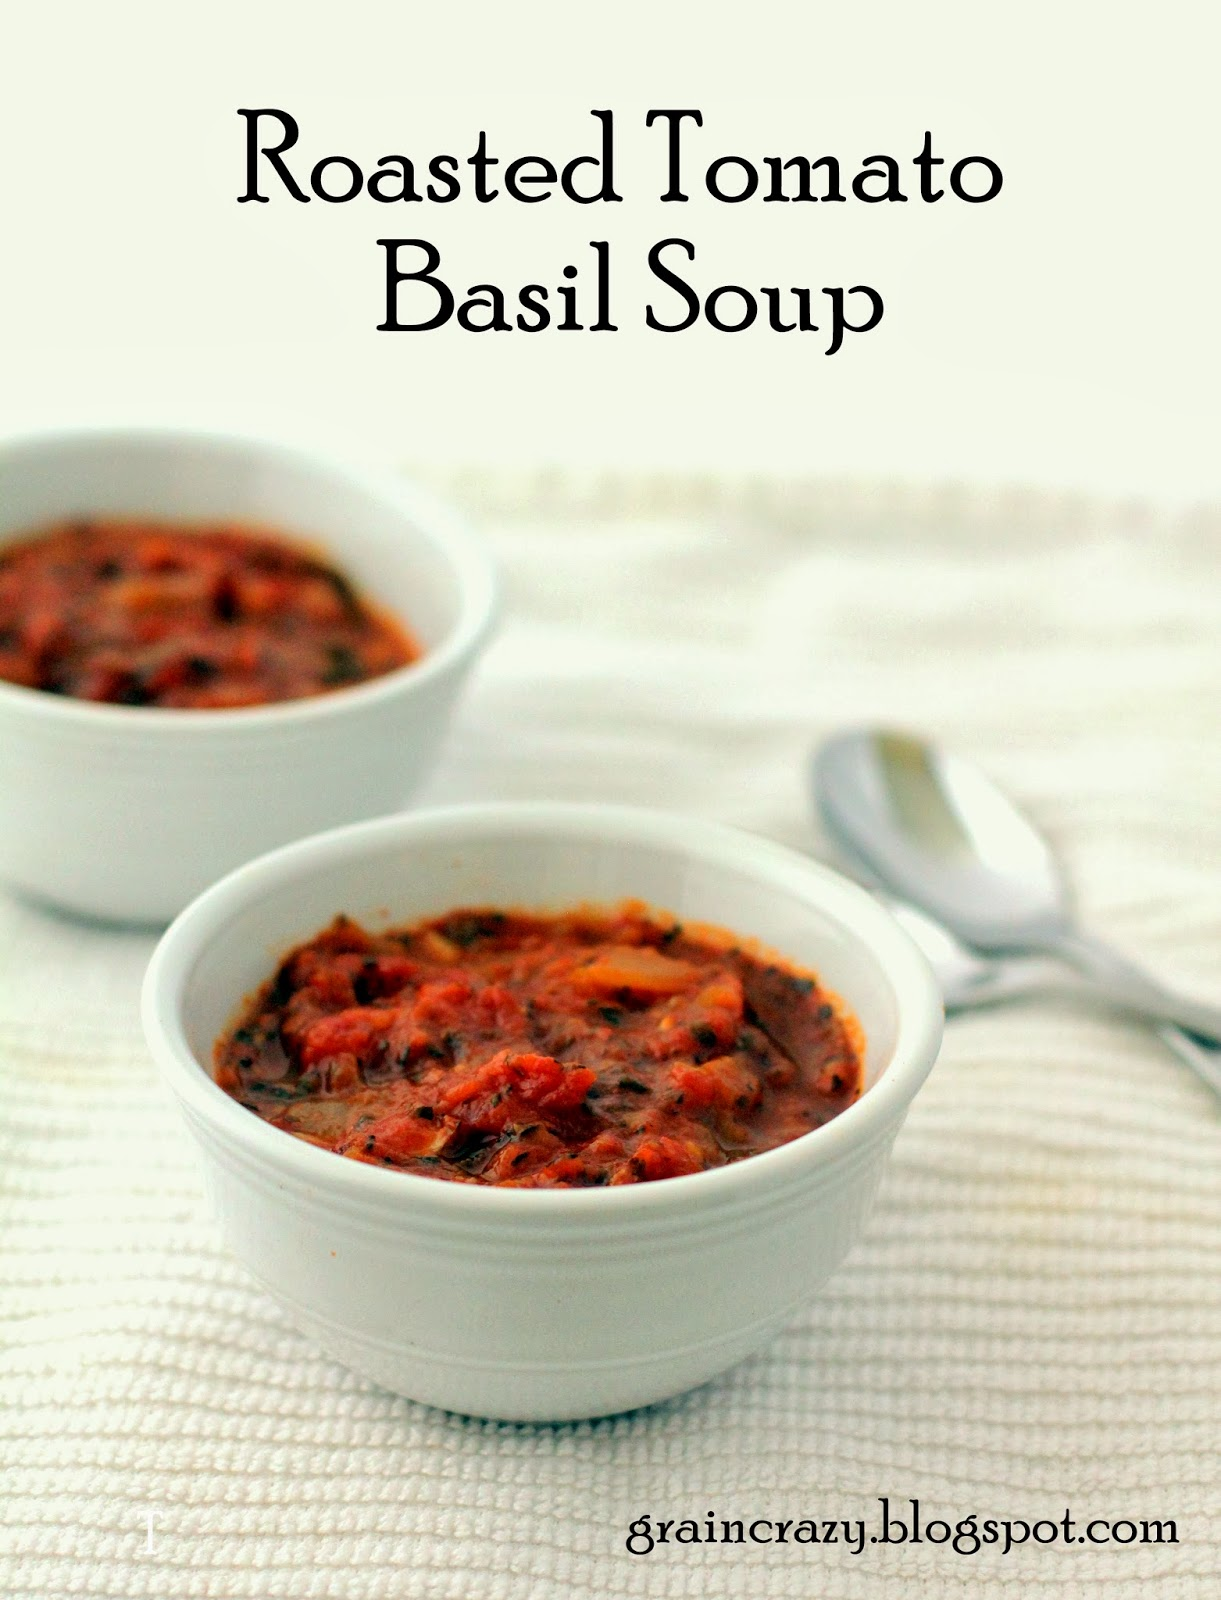 Grain Crazy: Roasted Tomato Basil Soup